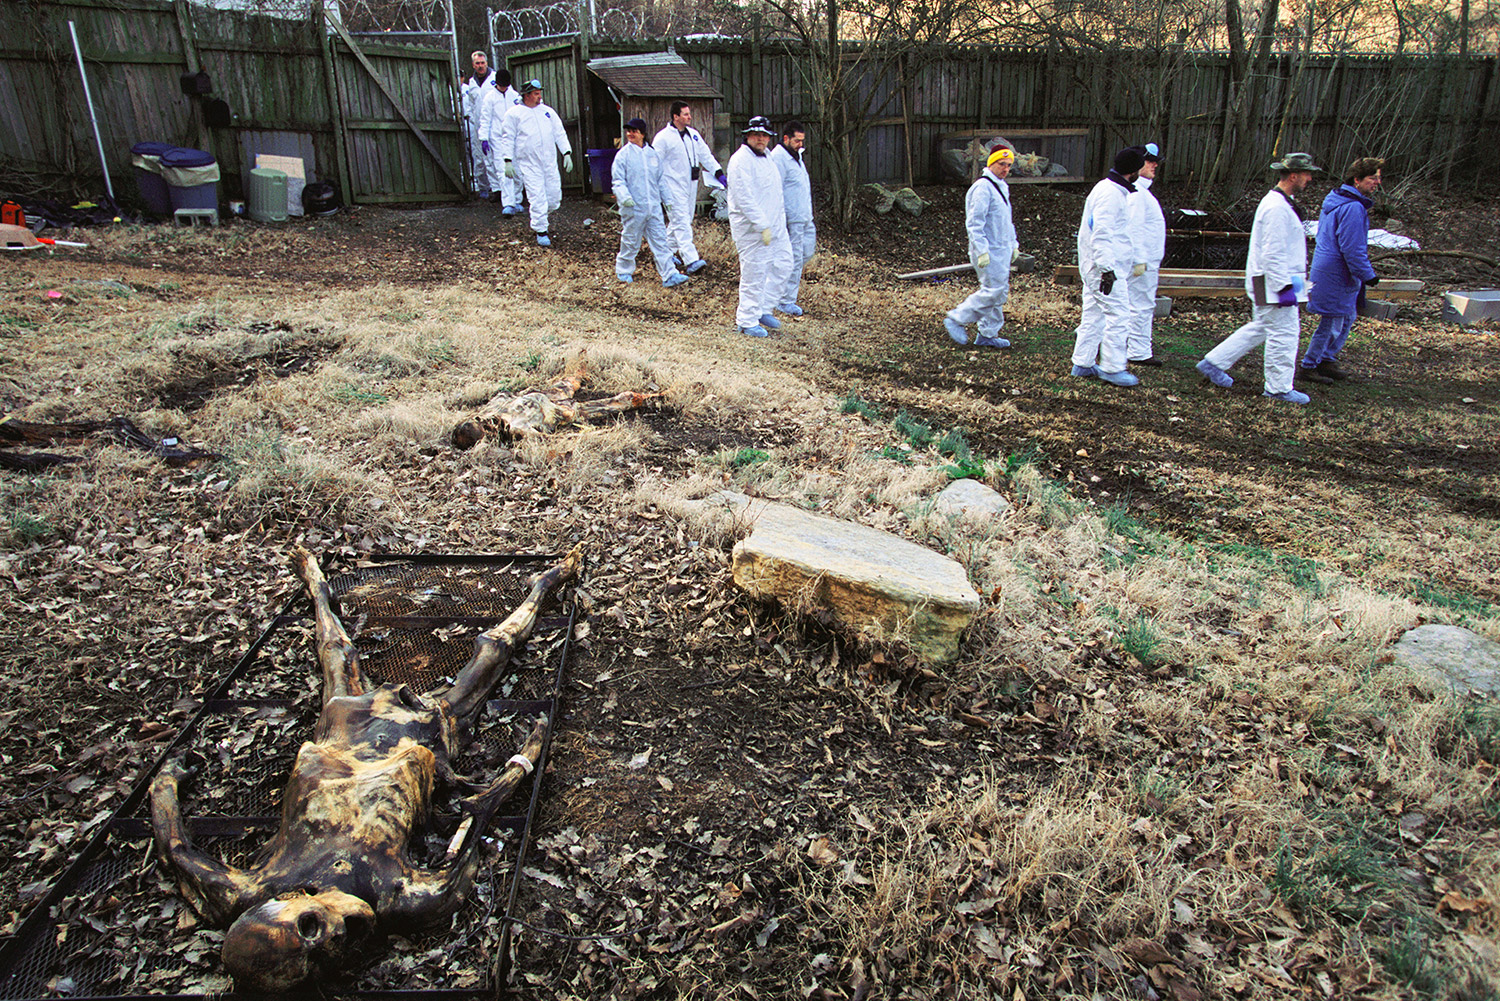 body farm Body farm a research facility where human decomposition is studied in various settings, as a way of objectifying timing and circumstances of death from human remains.